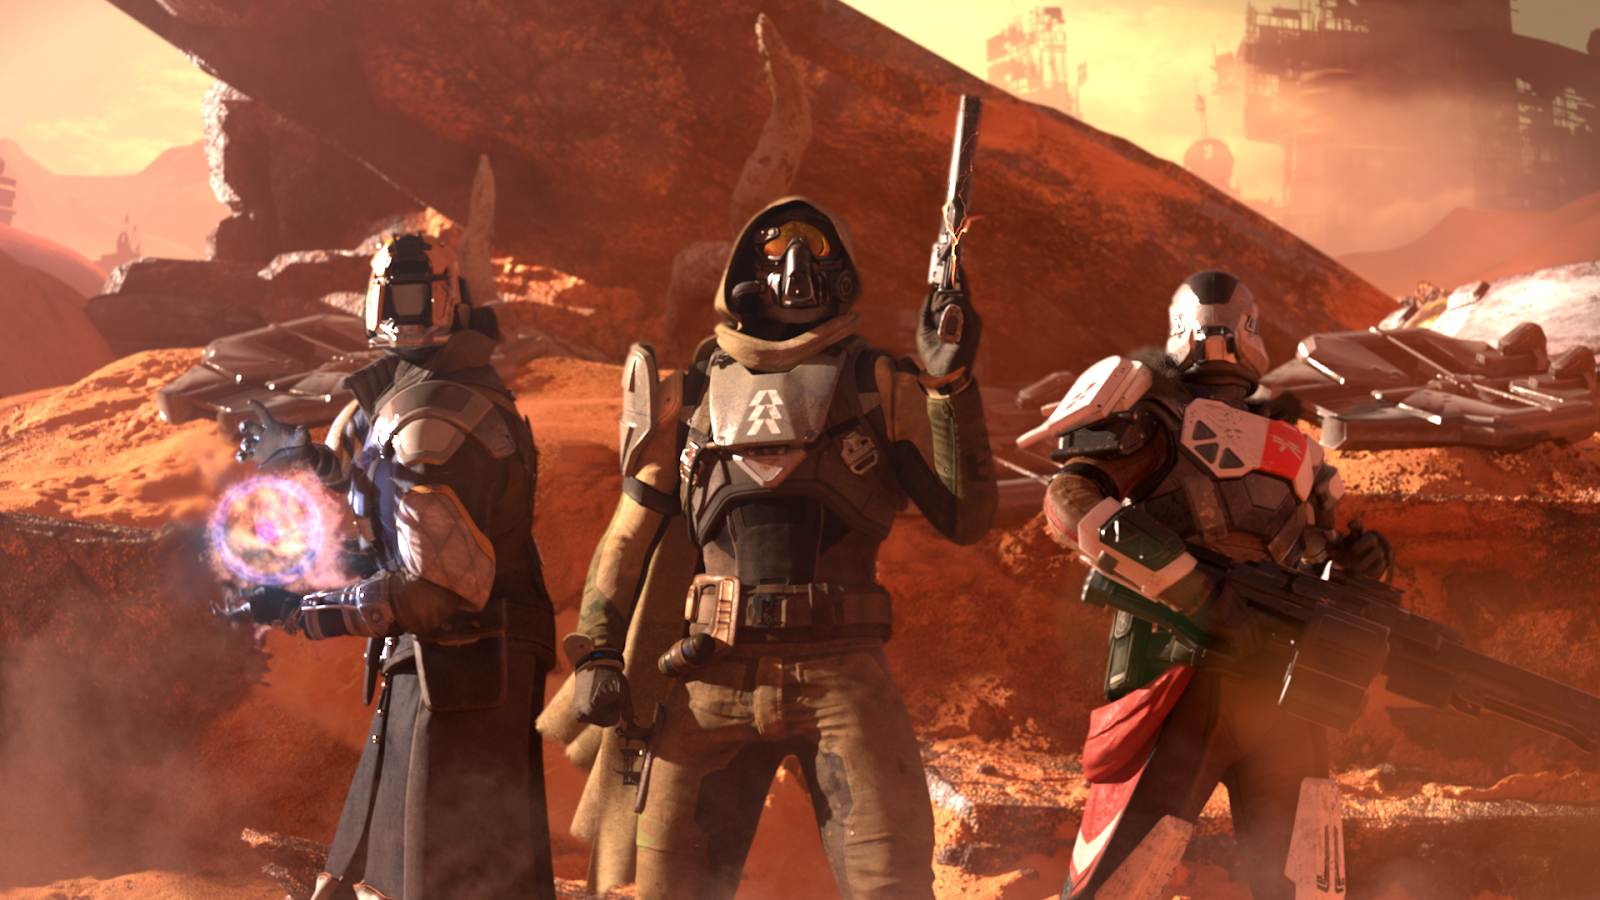 Vision network gvn review destiny xbox one my warlock experience